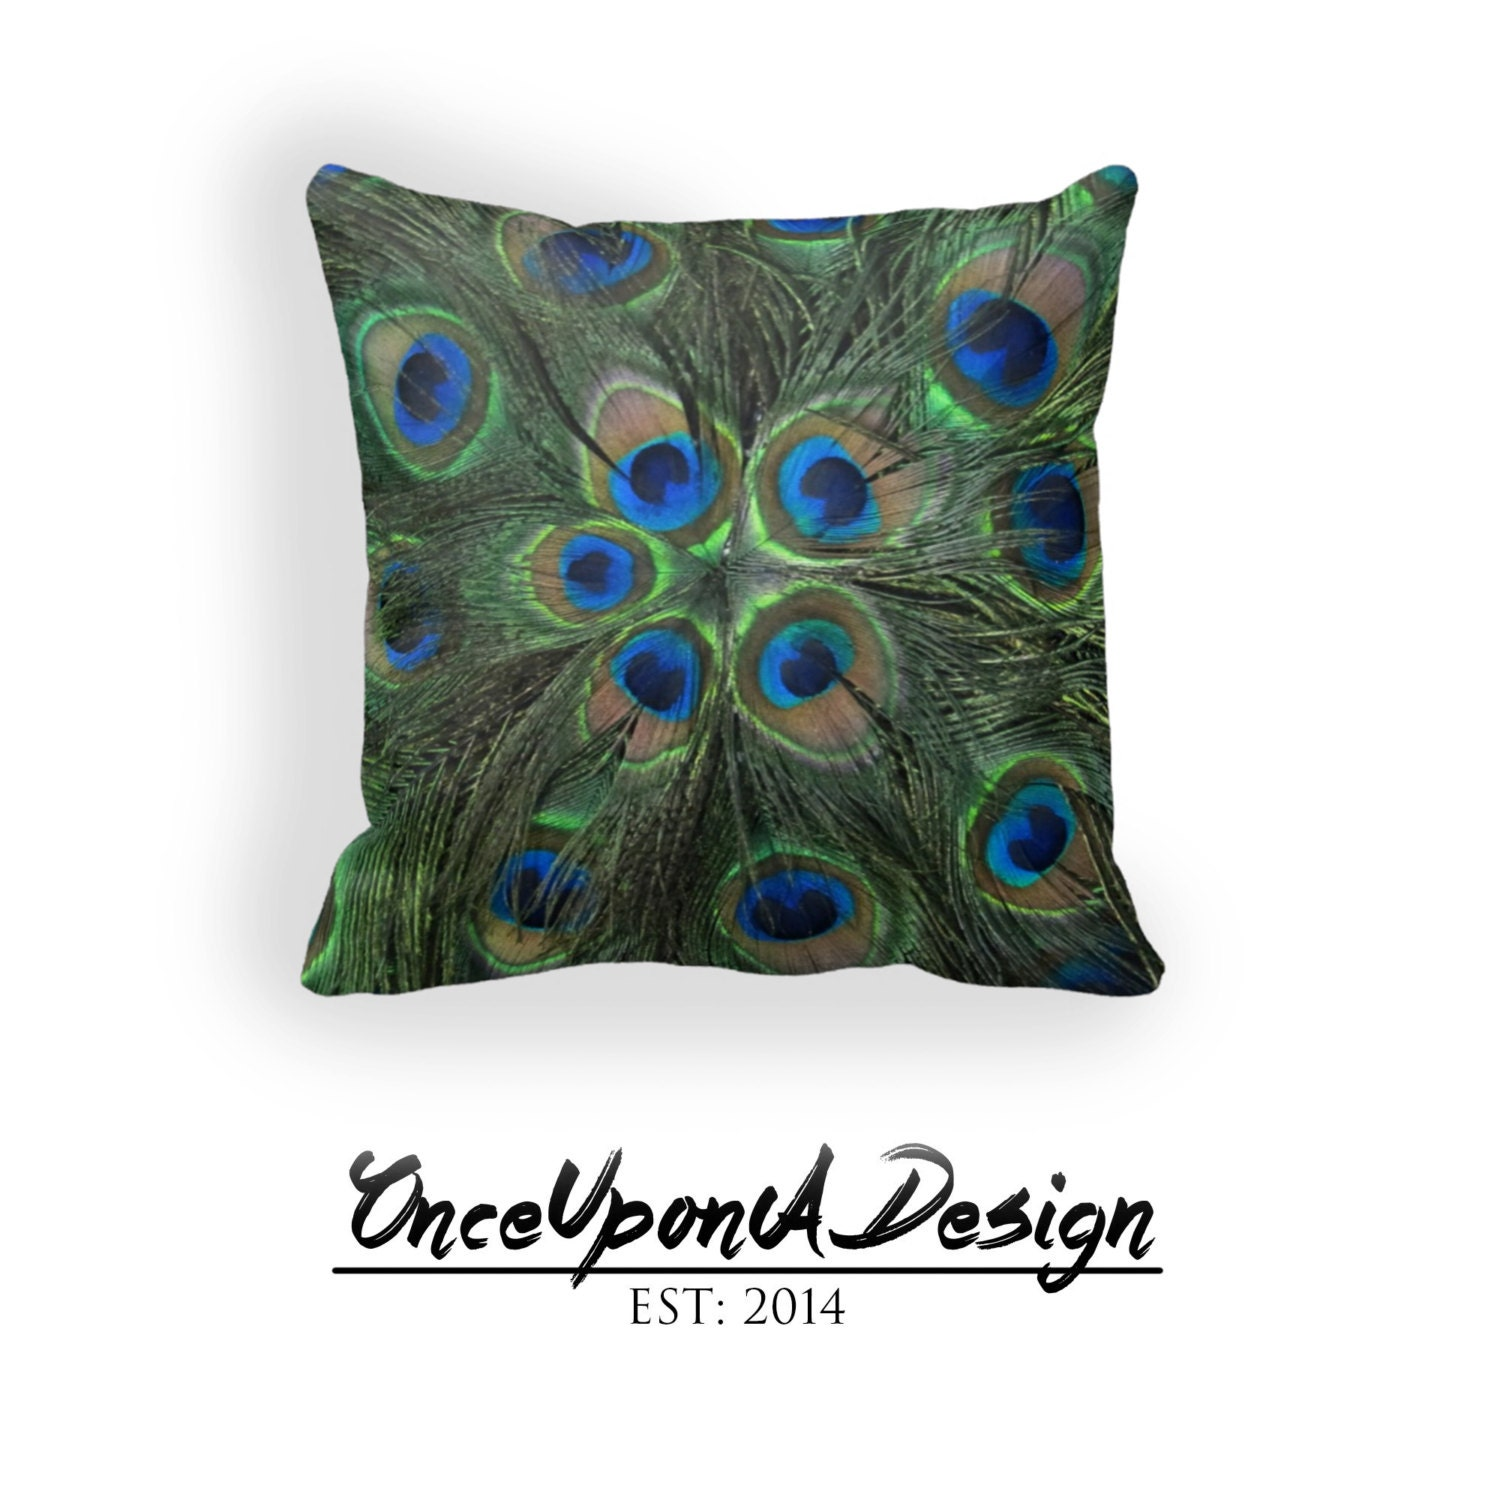 Throw Pillow Peacock : Cool Peacock Throw Pillow Peacock Decorative Pillow by DesignyLand